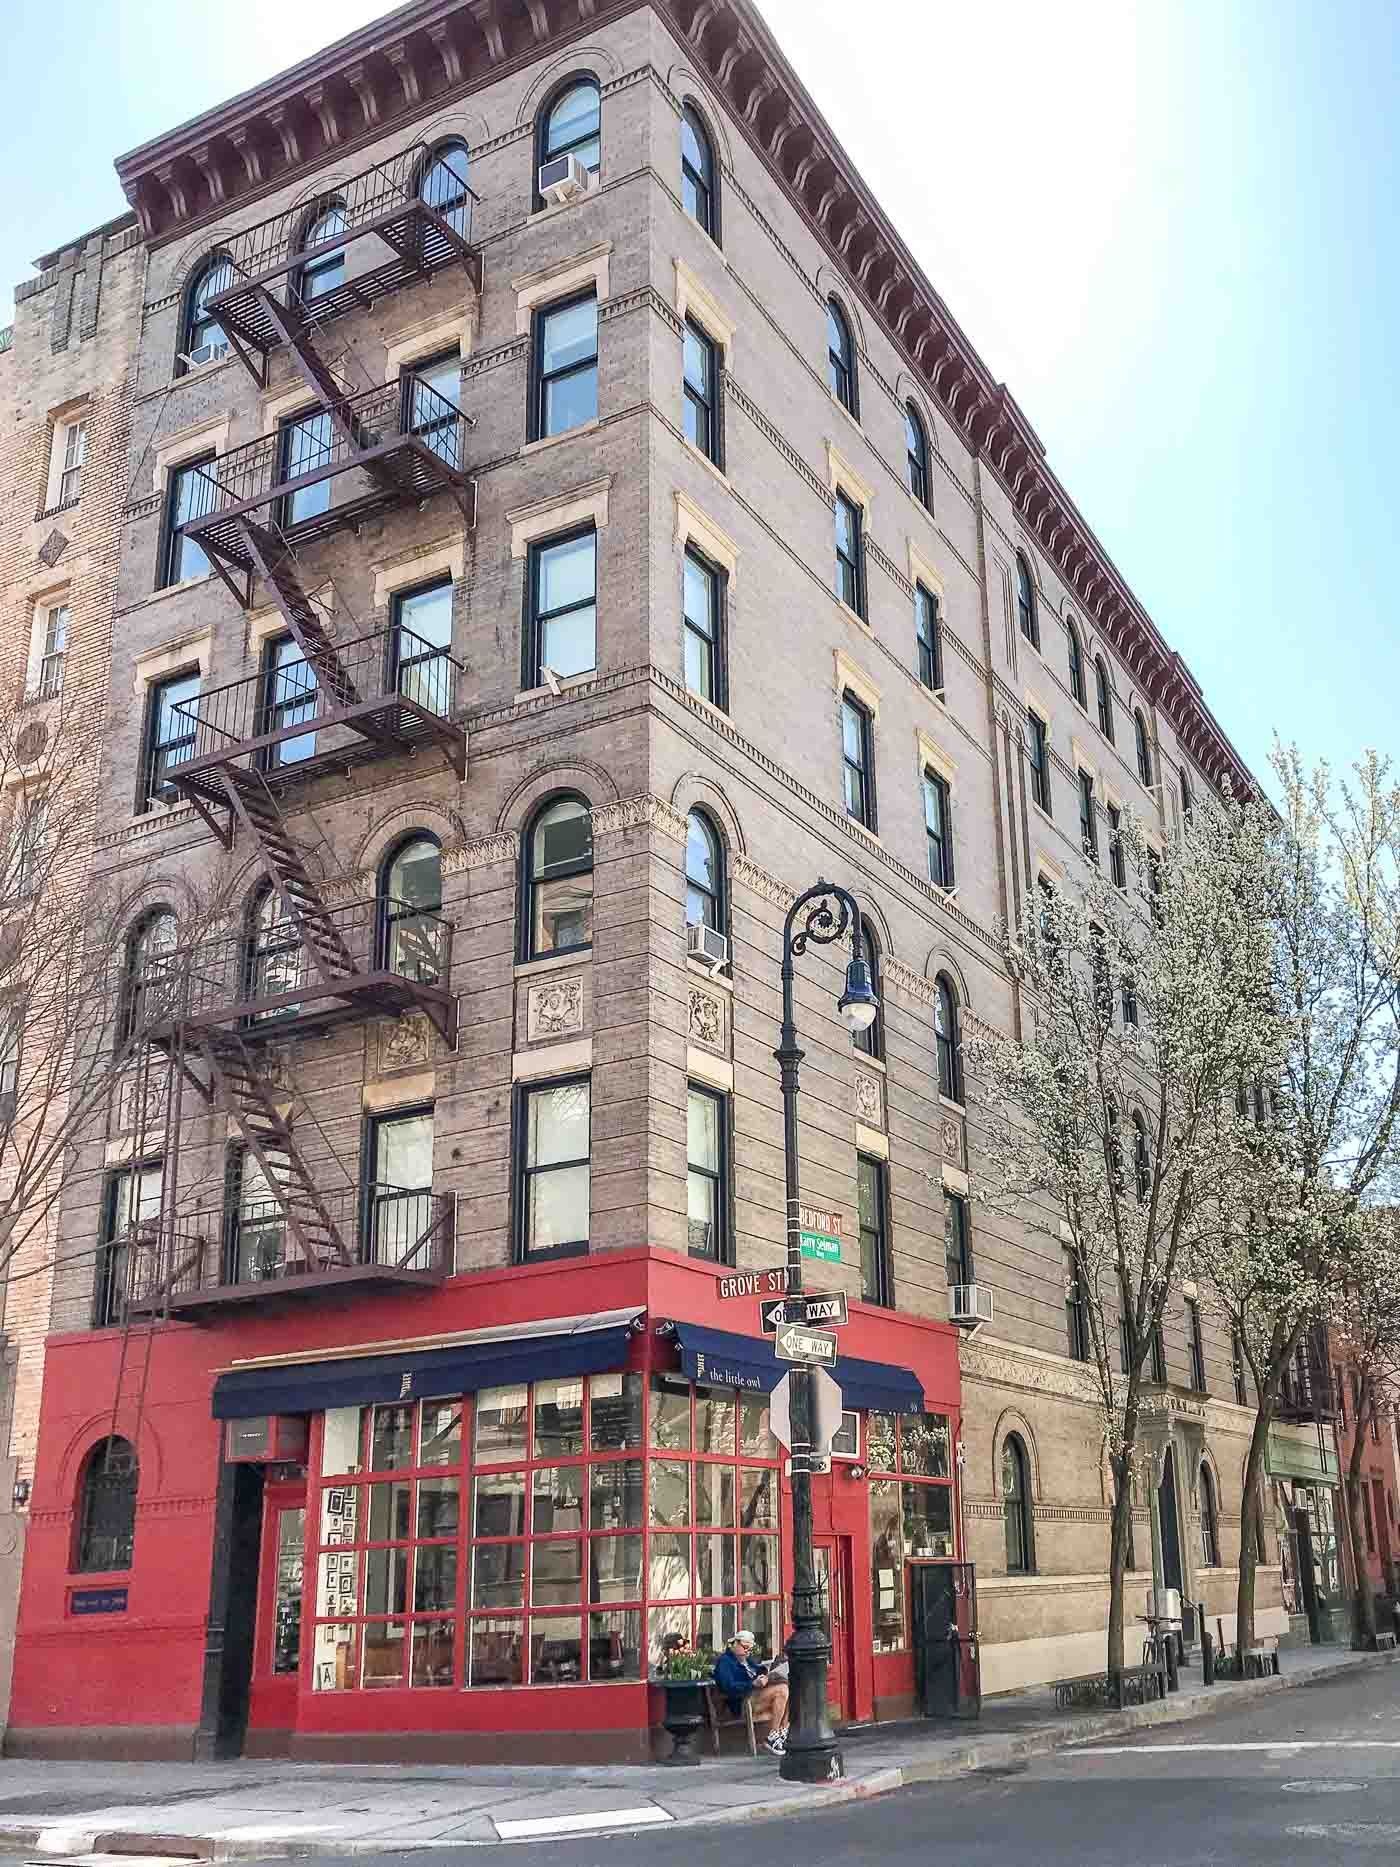 Friends Apartment In New York City Greenwich Village Where Monica And Rachel Lived Nyc Newyorkcity Travel Travelguide